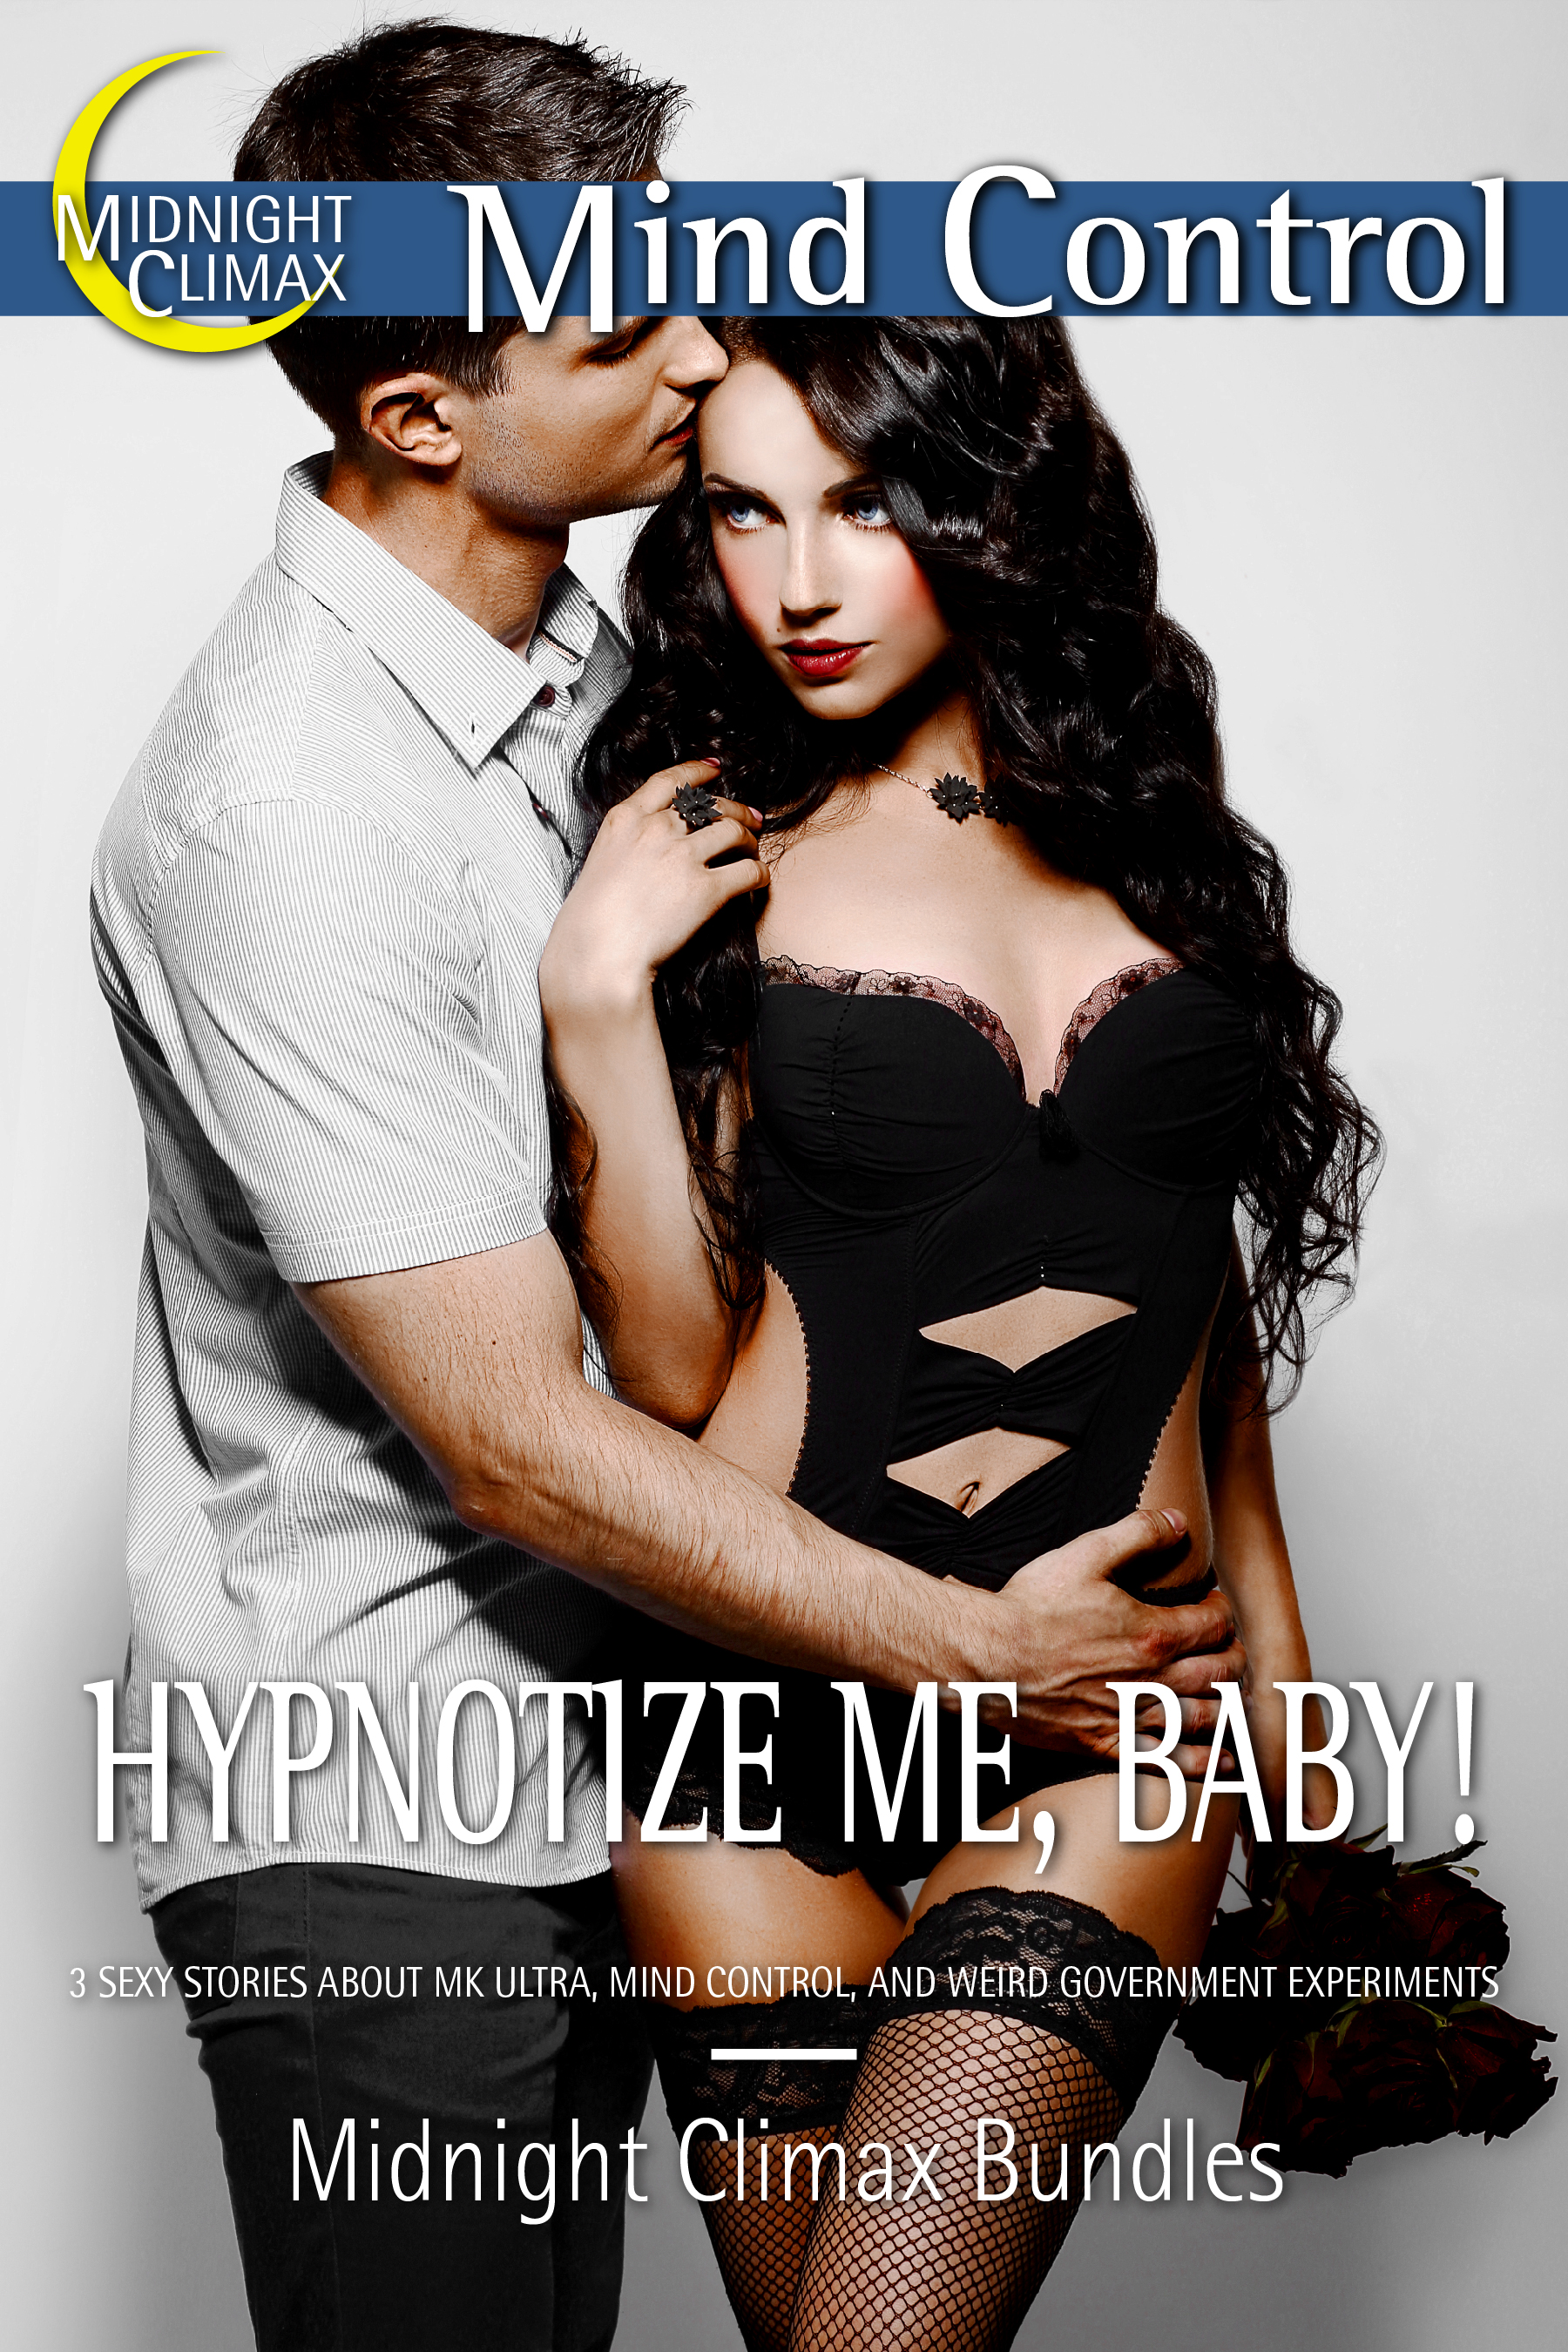 Midnight Climax Bundles - Hypnotize Me, Baby! (3 Sexy Stories About MK ULTRA, Mind Control, and Weird Government Experiments)